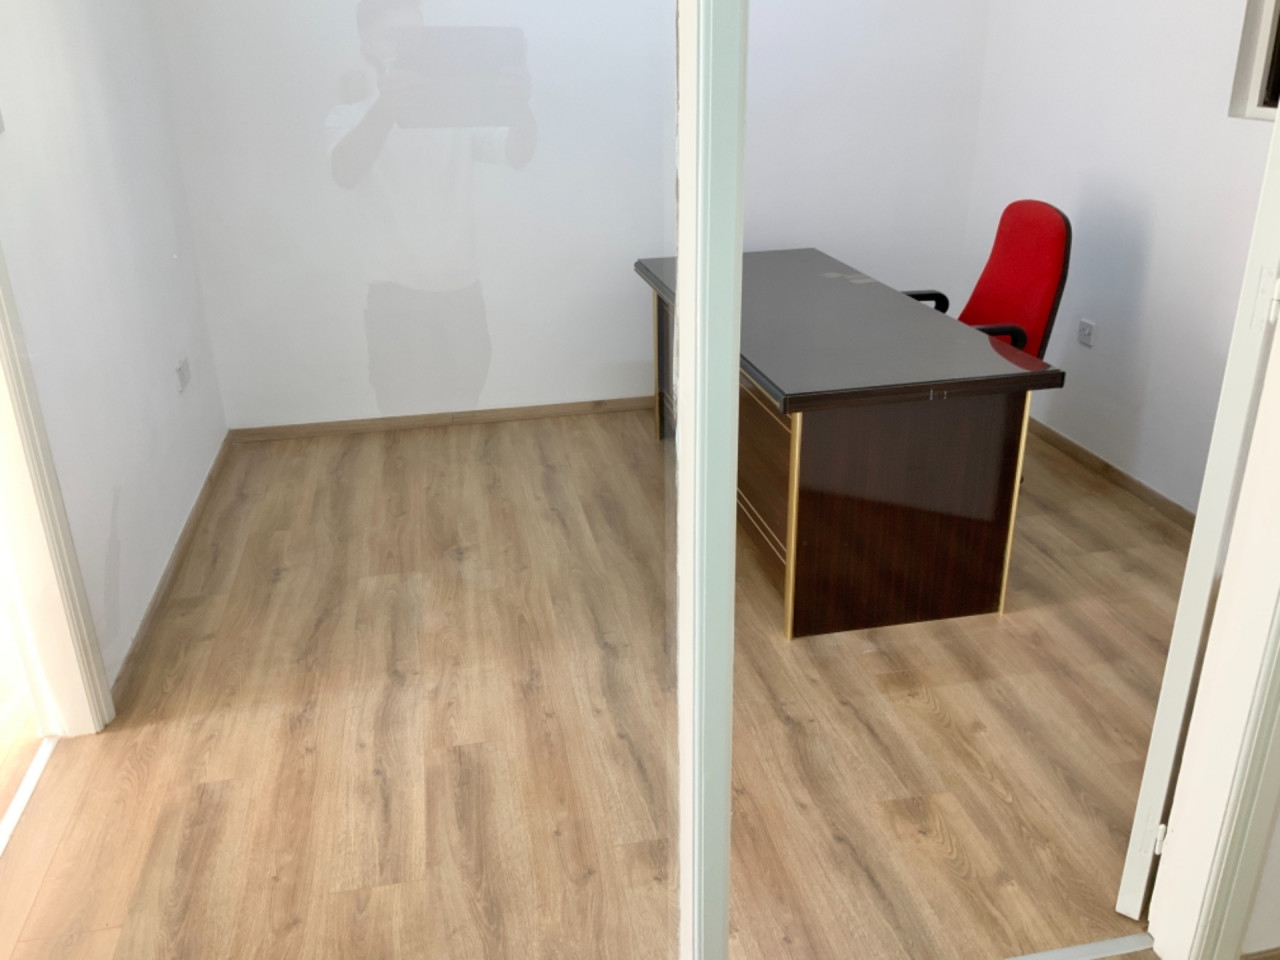 Commercial (Office) in City Center, Nicosia for Rent  1 Bath.....